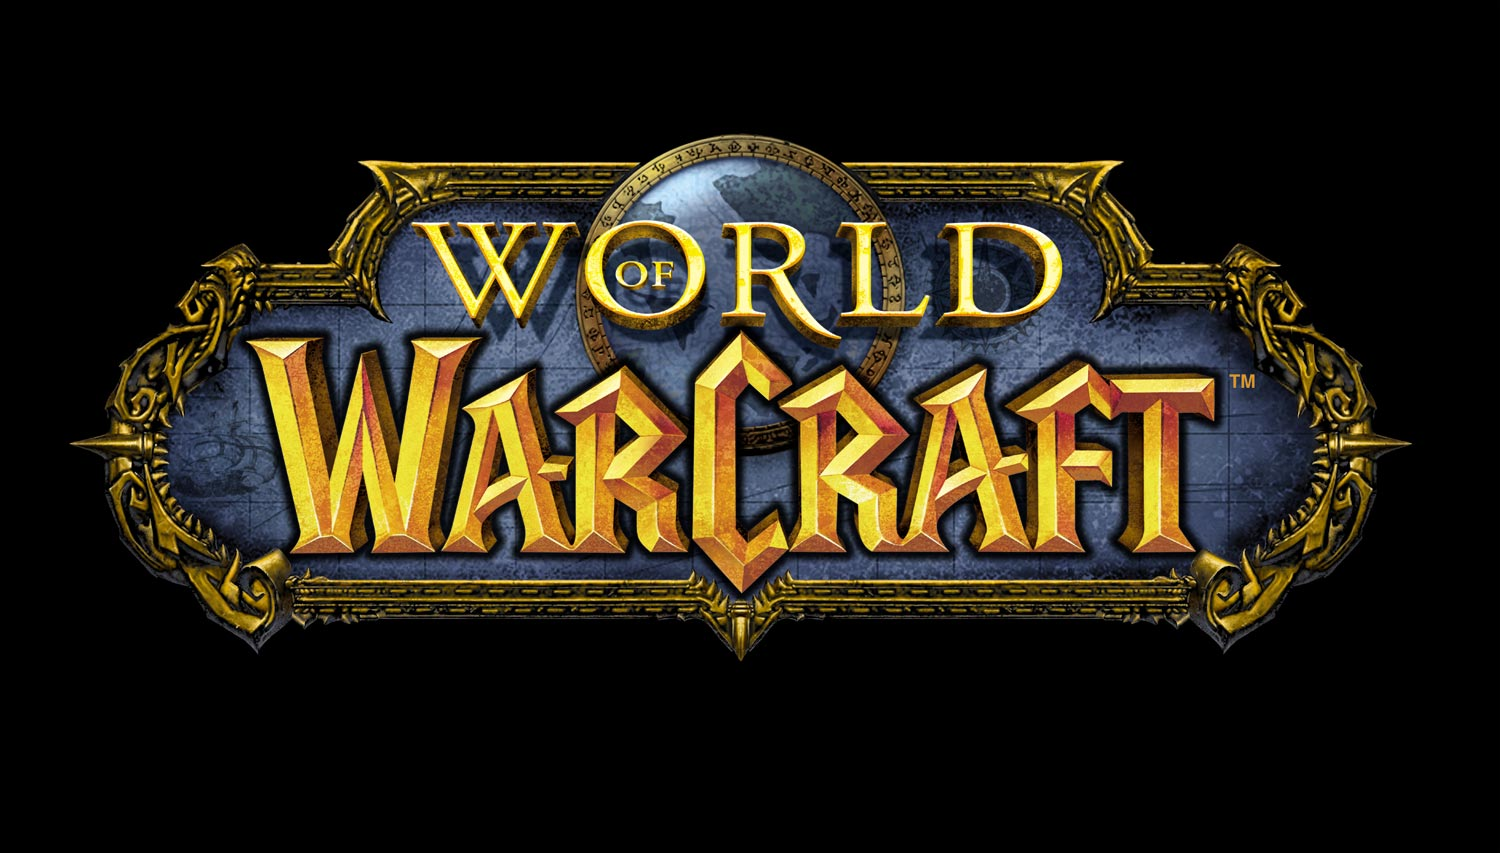 World of Warcraft-Official Poster Banner PROMO LOGO XLG-05DEZEMBRO2013